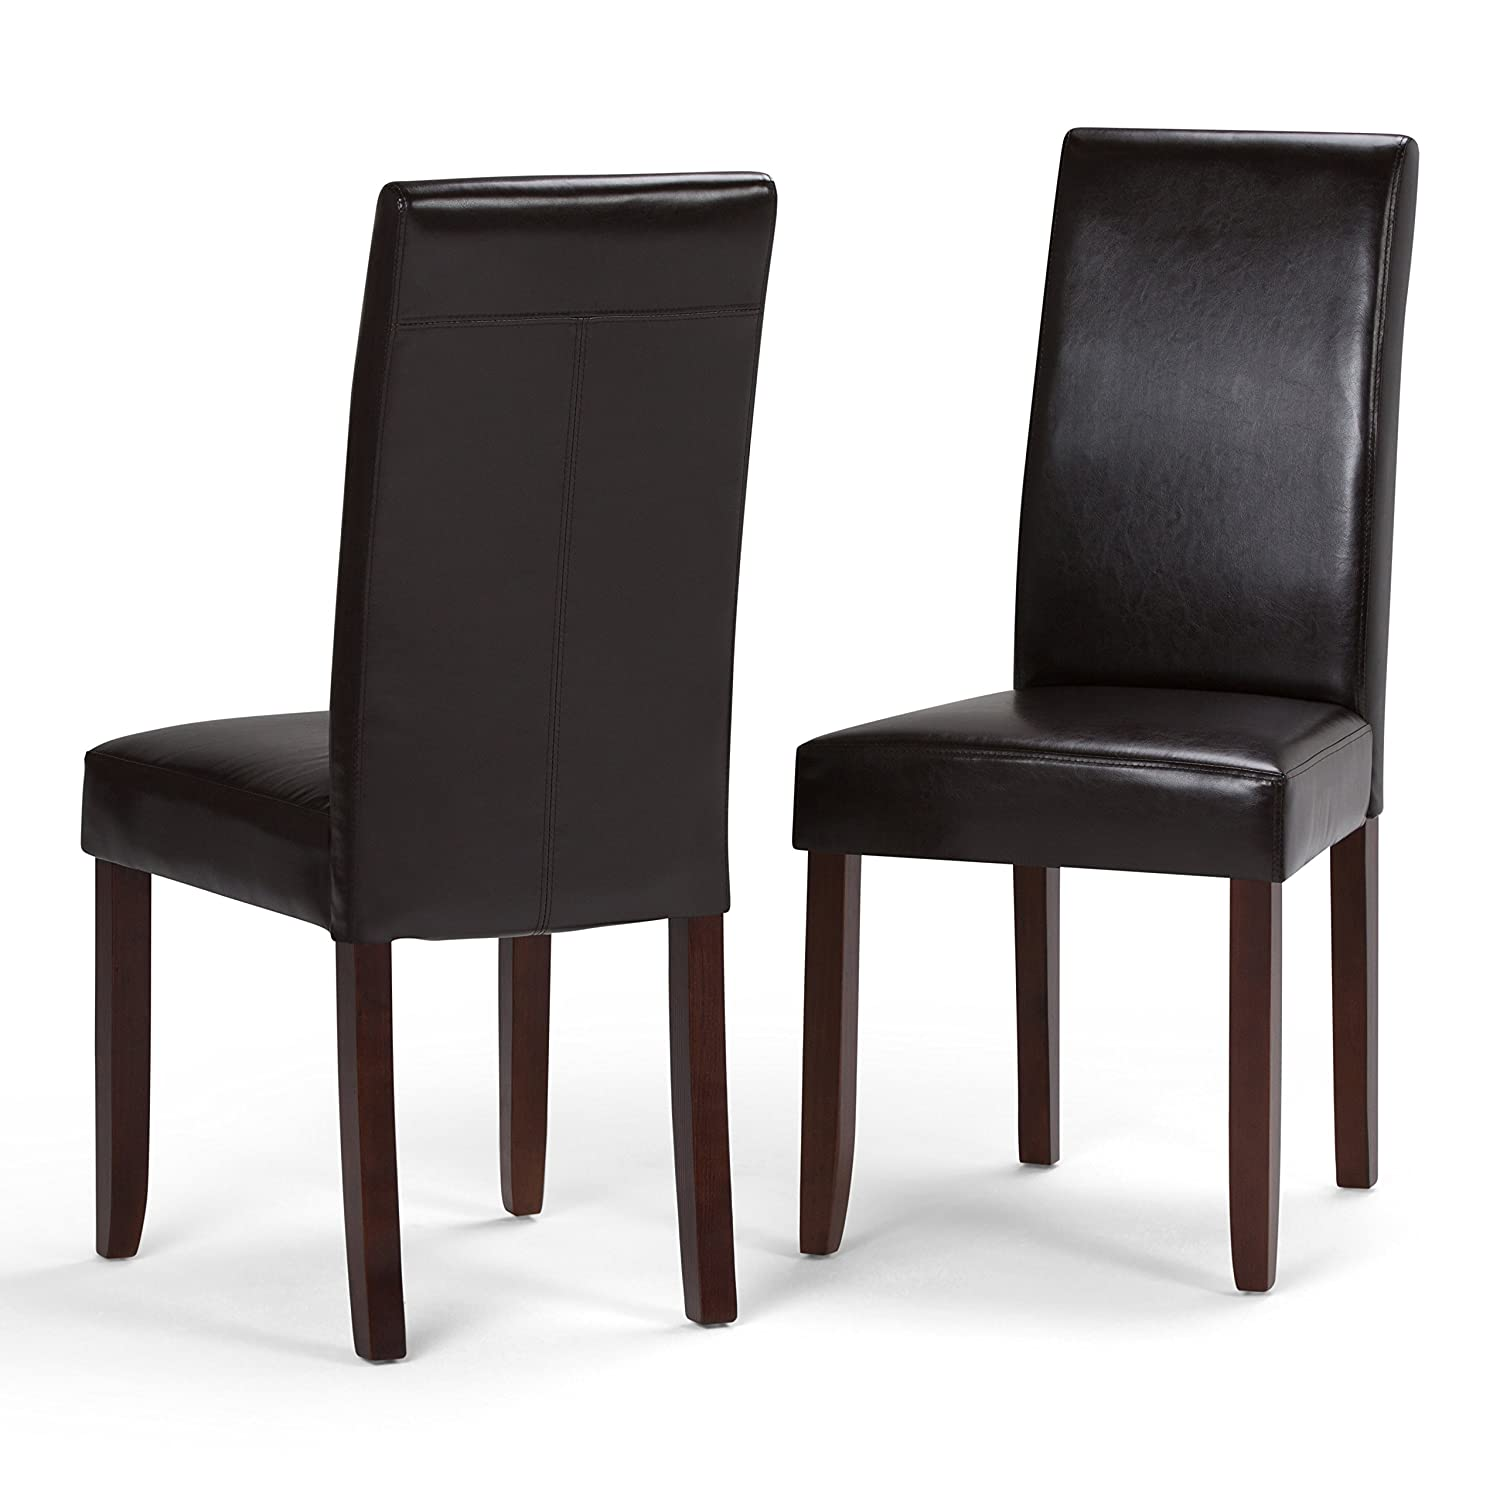 Tanners Brown Simpli Home Acadian Parson Dining Chair, Dove Grey (Set of 2)